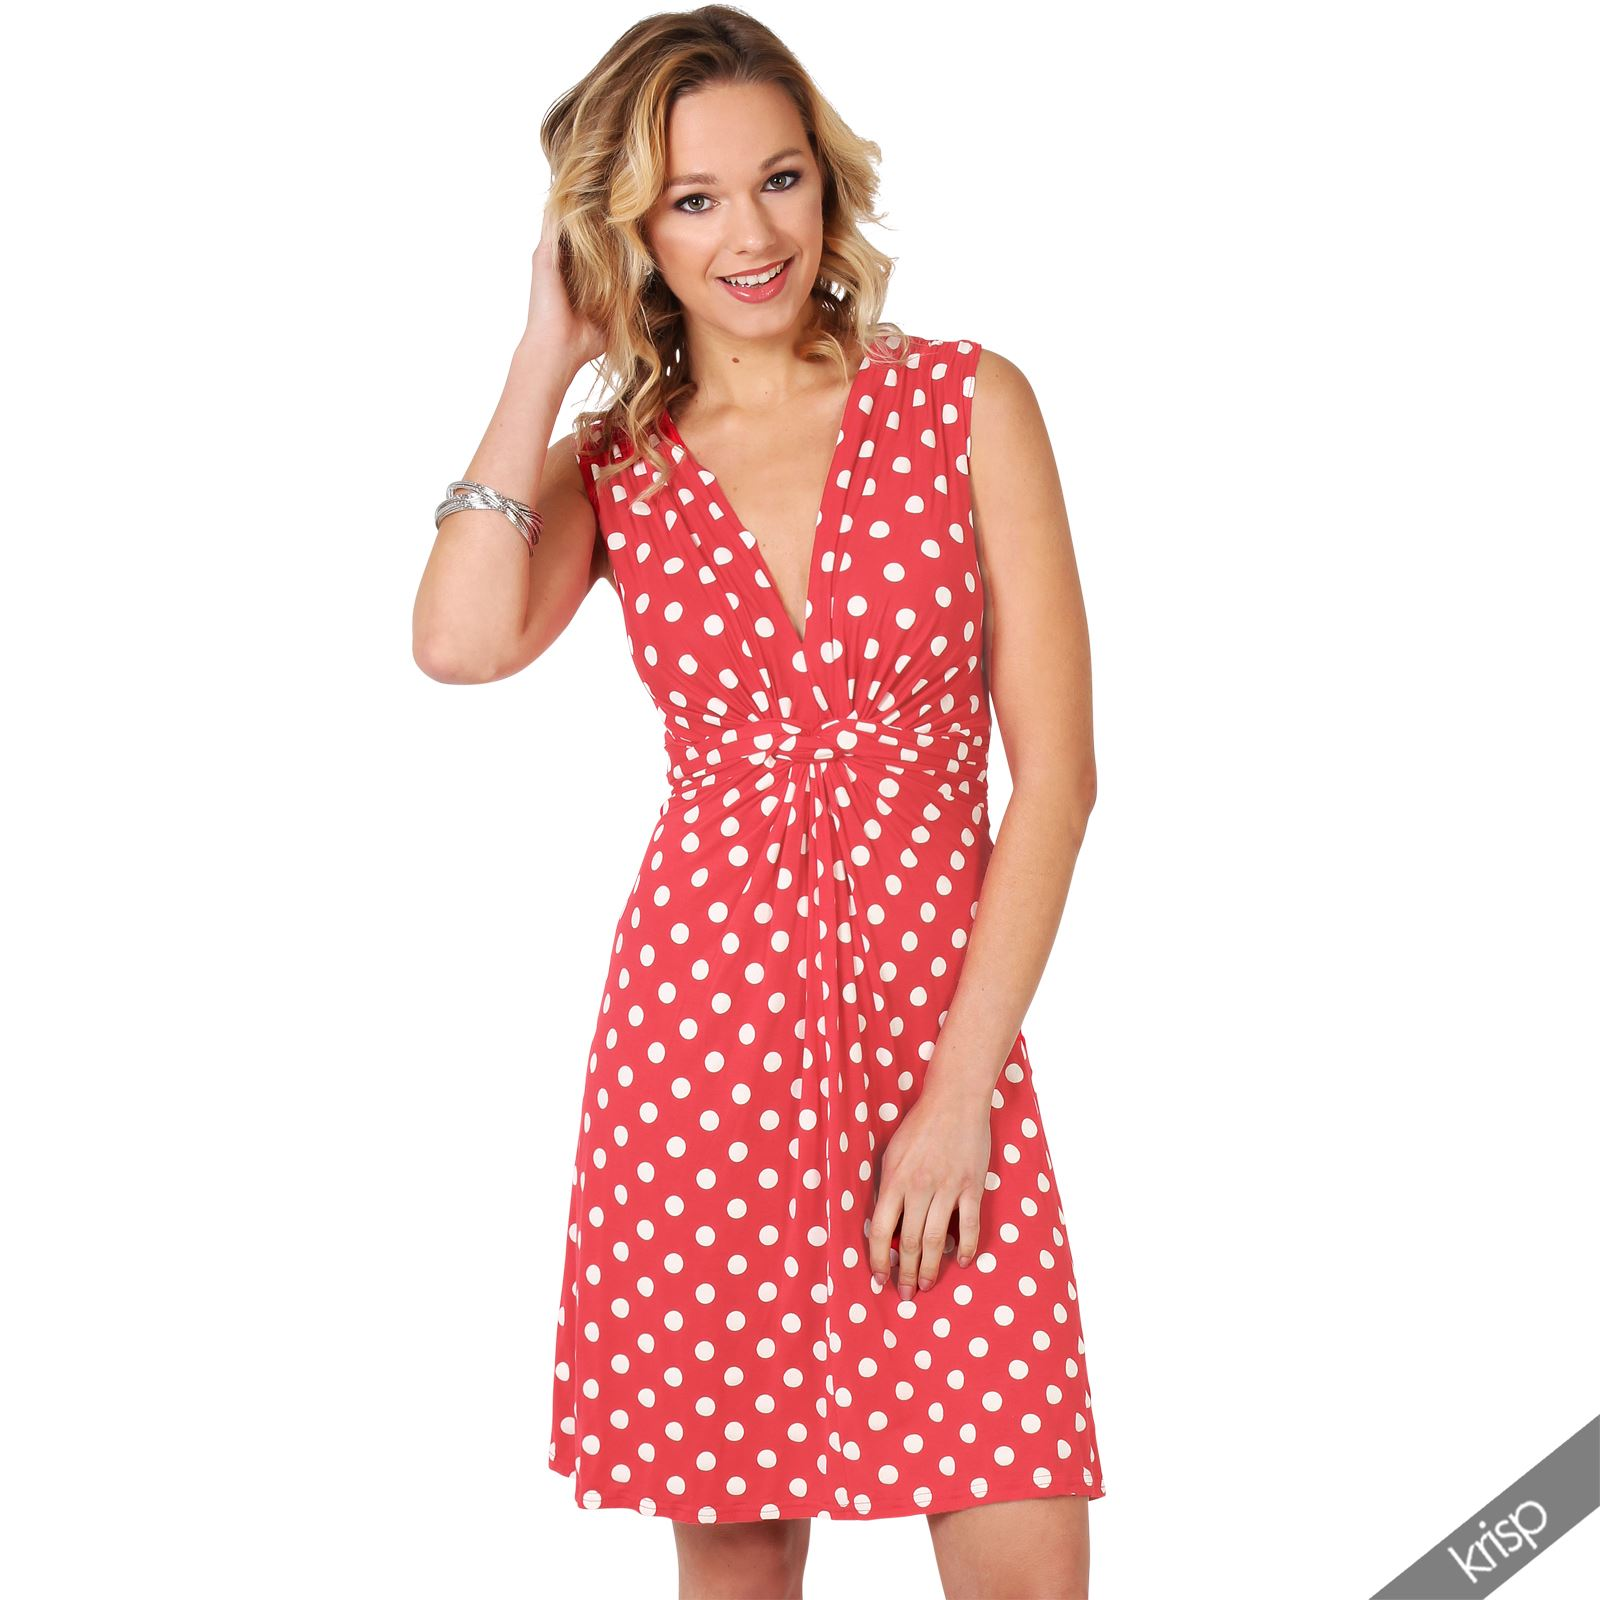 Womens-Polka-Dot-Retro-Dress-Pleated-Skirt-Wrap-Mini-V-Neck-Top-Swing-Party thumbnail 10